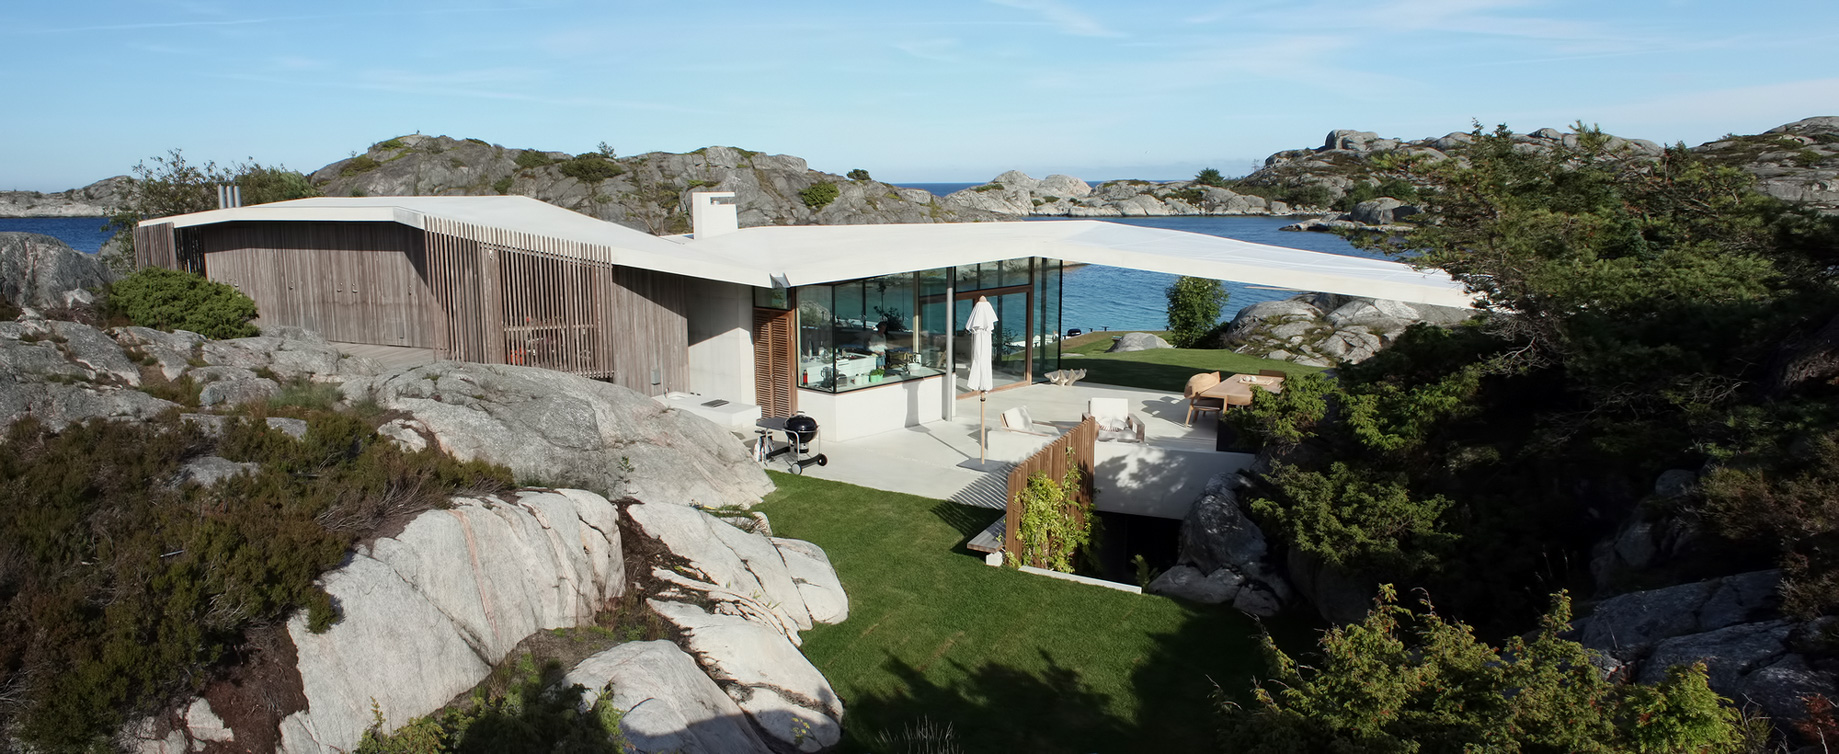 Lyngholmen Summer House – Lillesand, Agder, Norway